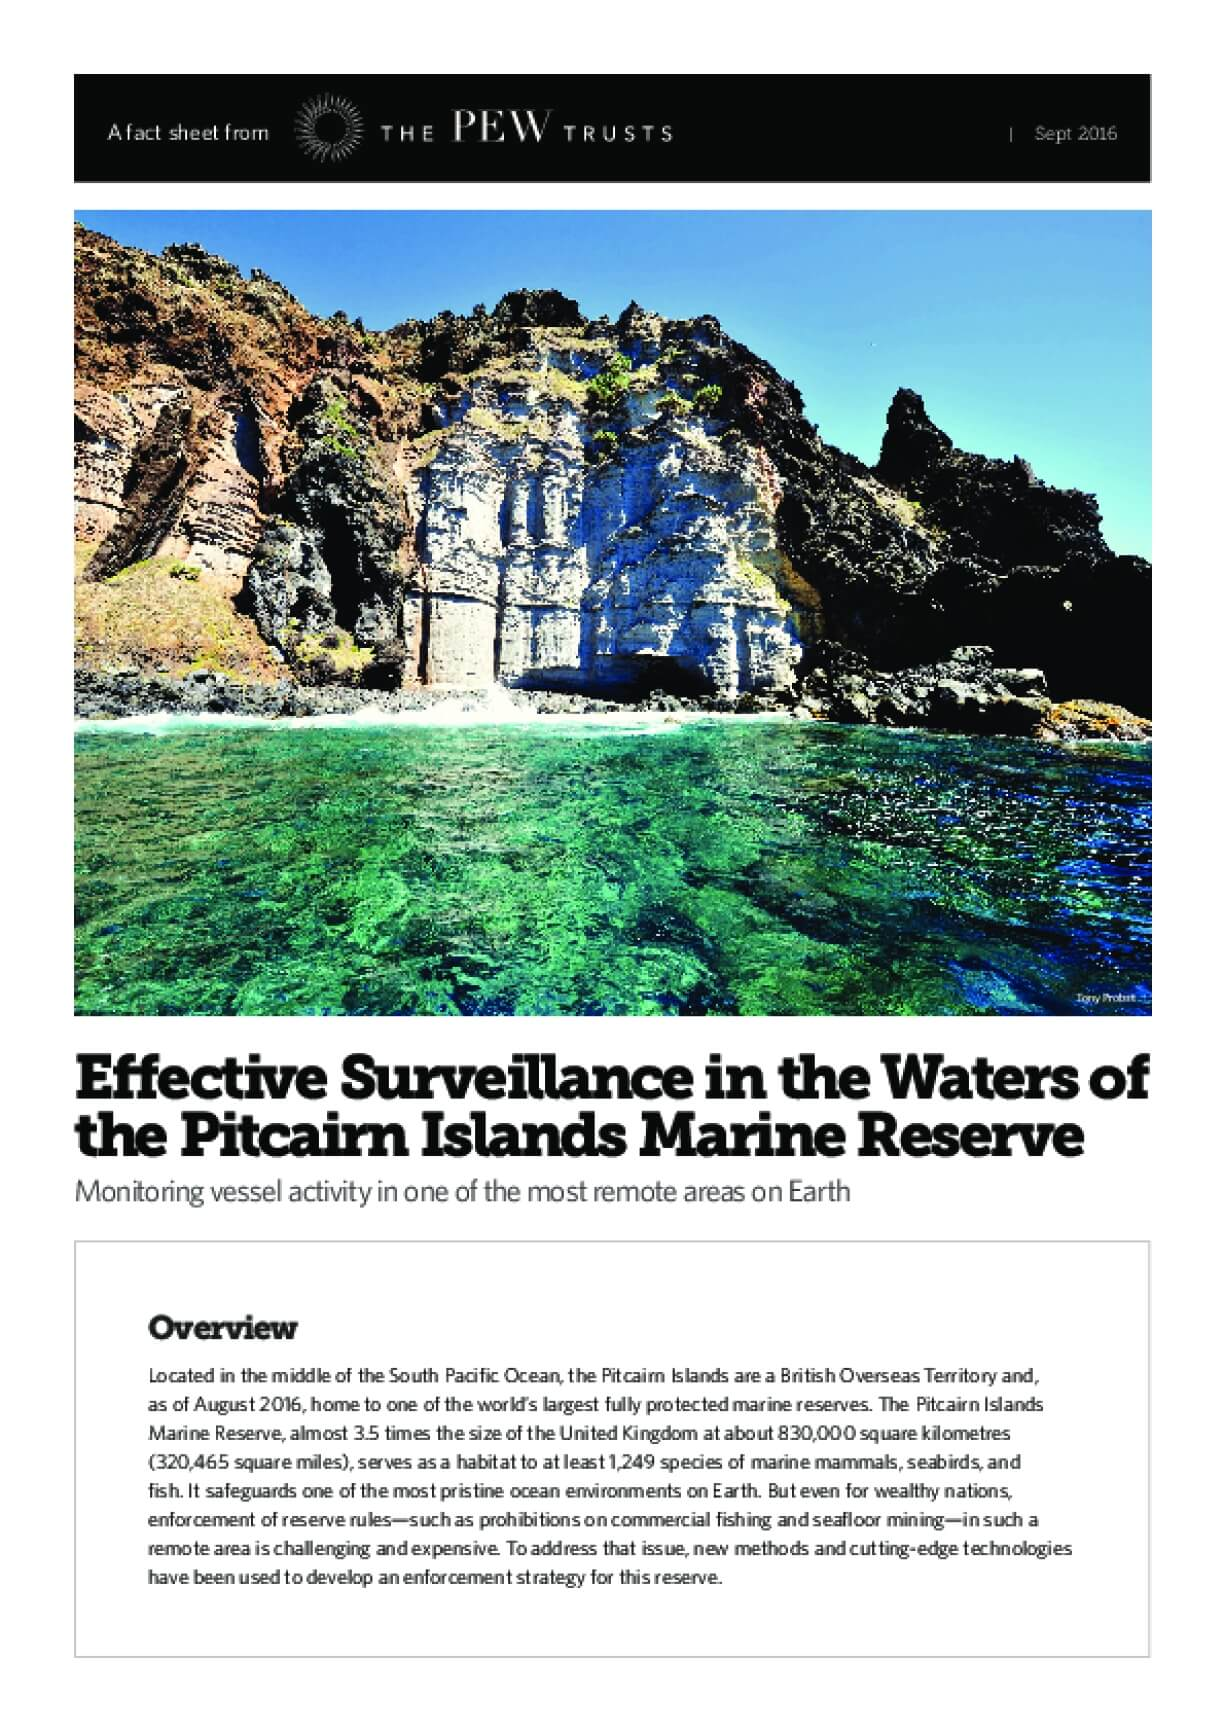 Effective Surveillance in the Waters of the Pitcairn Islands Marine Reserve